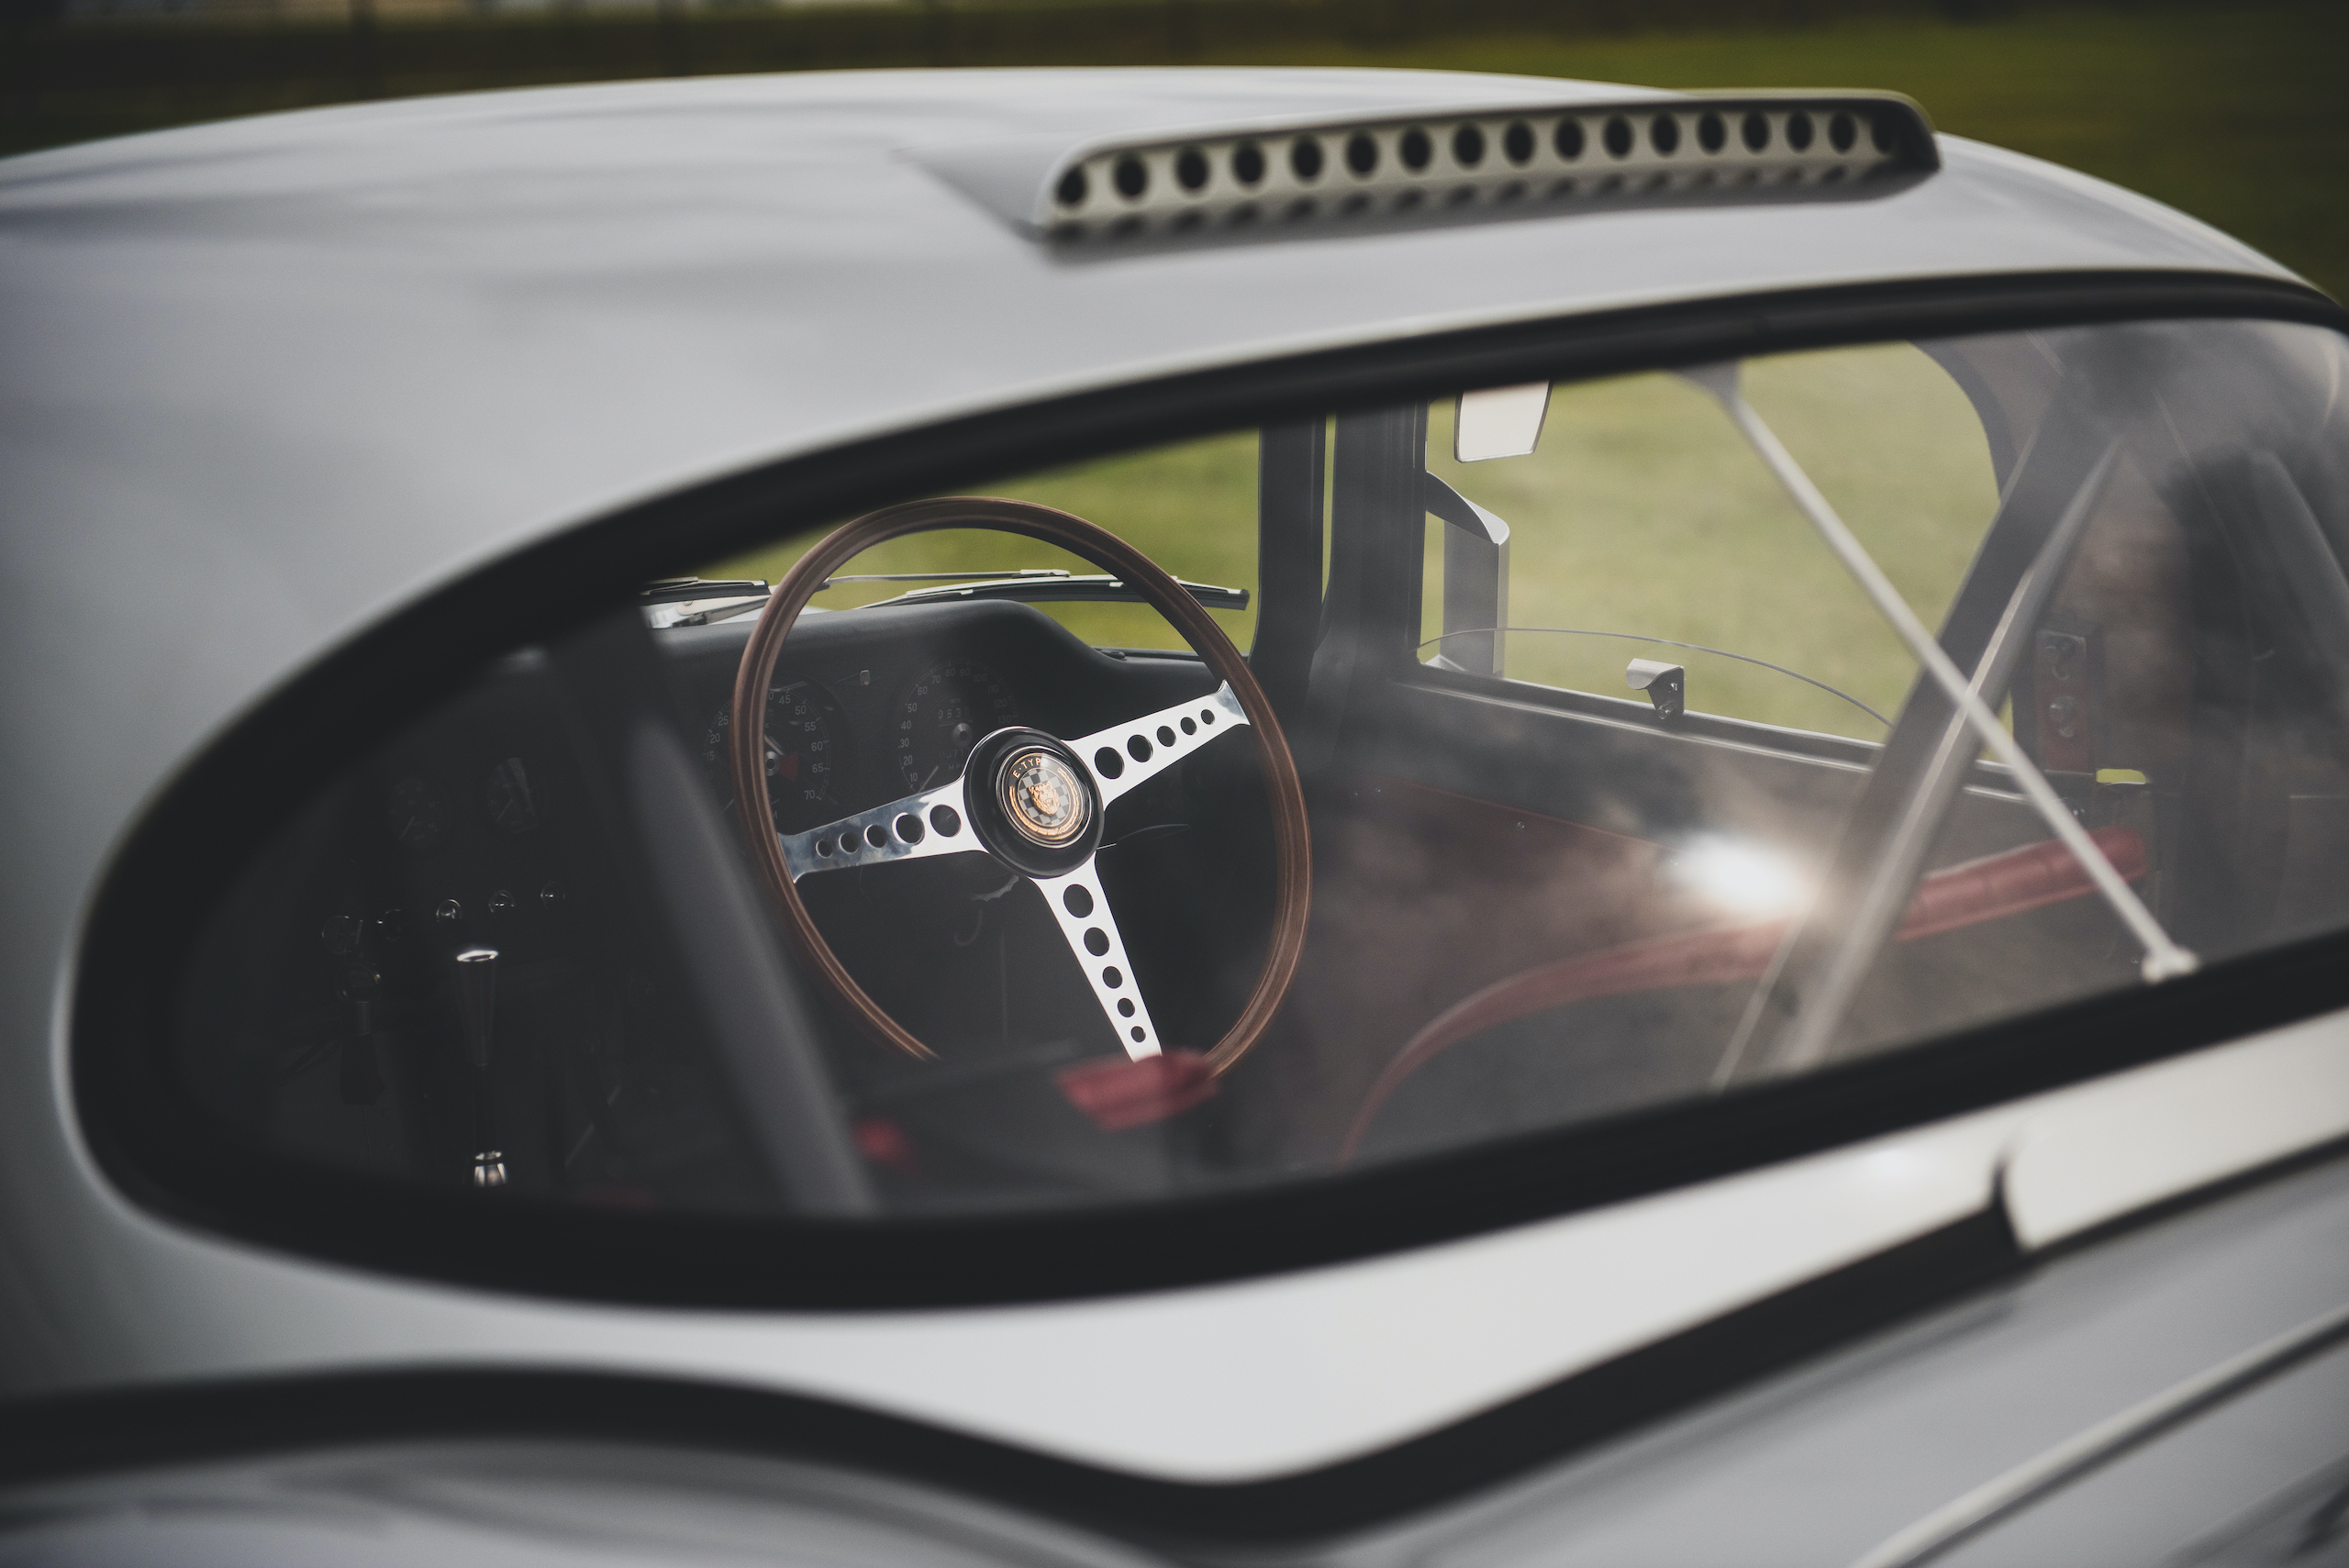 1963 Jag E Type steering wheel through rear glass